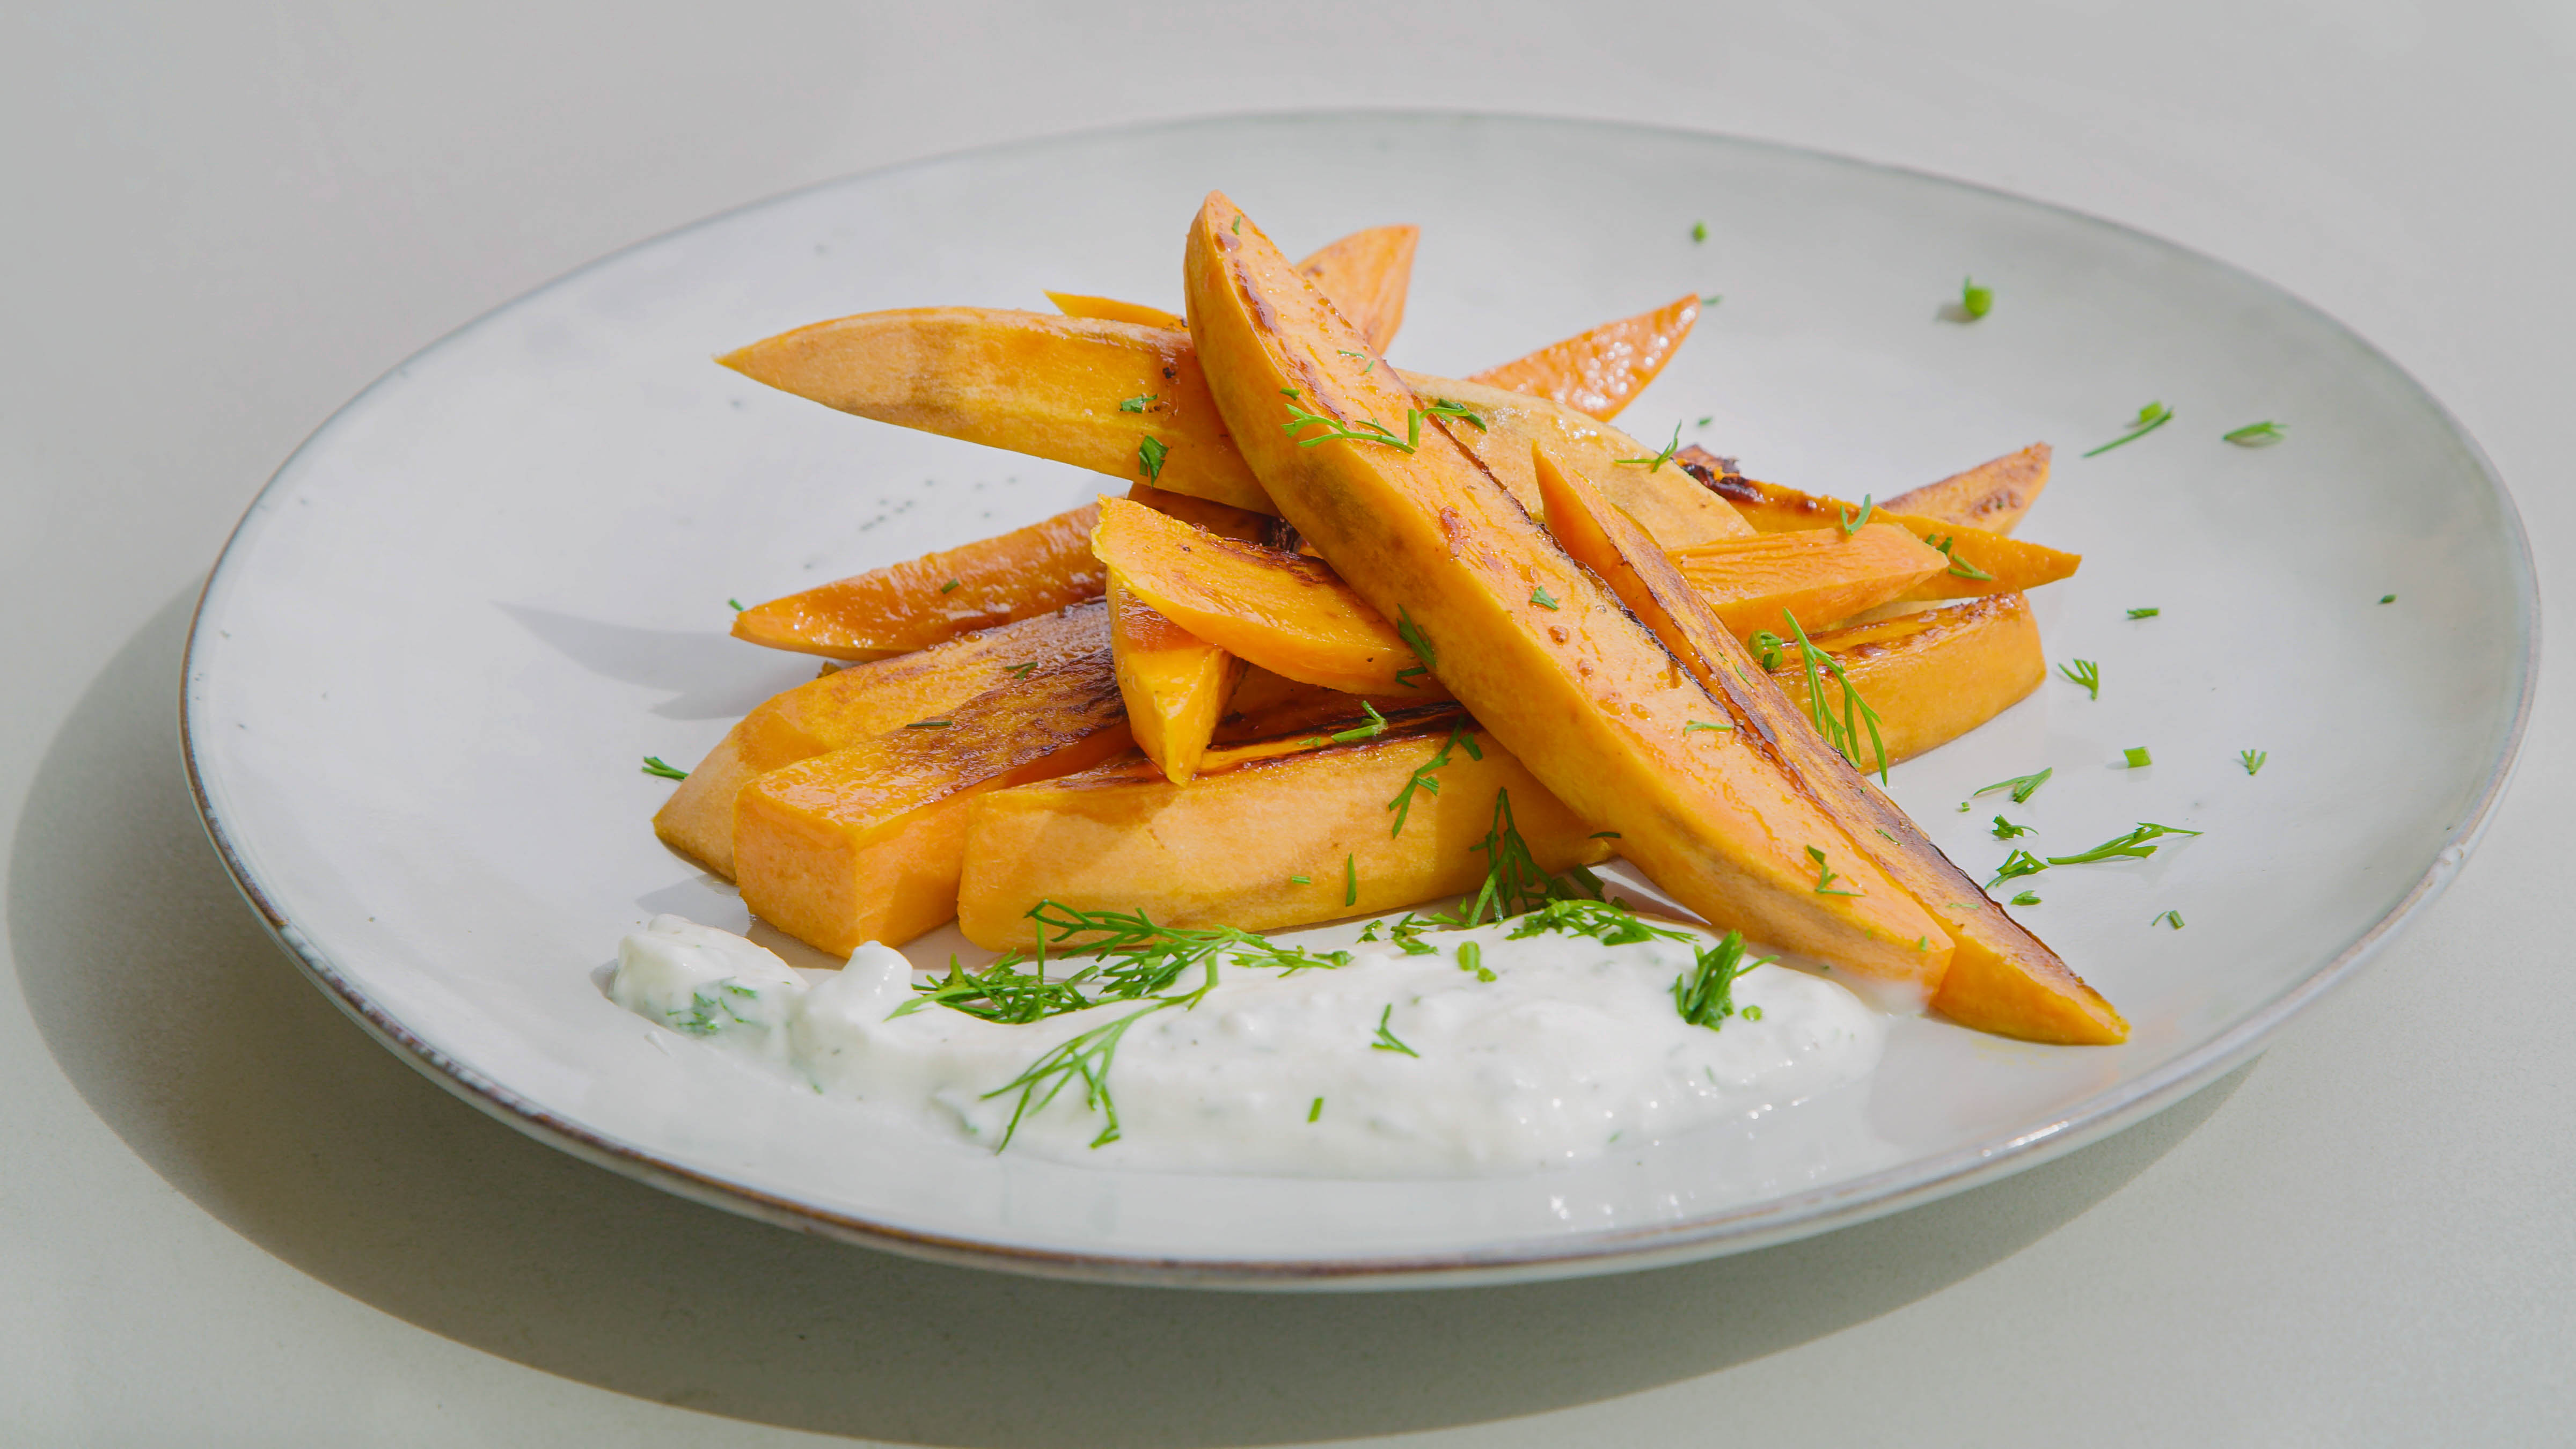 Tepan-cooked sweet potato chips with tzatziki dip